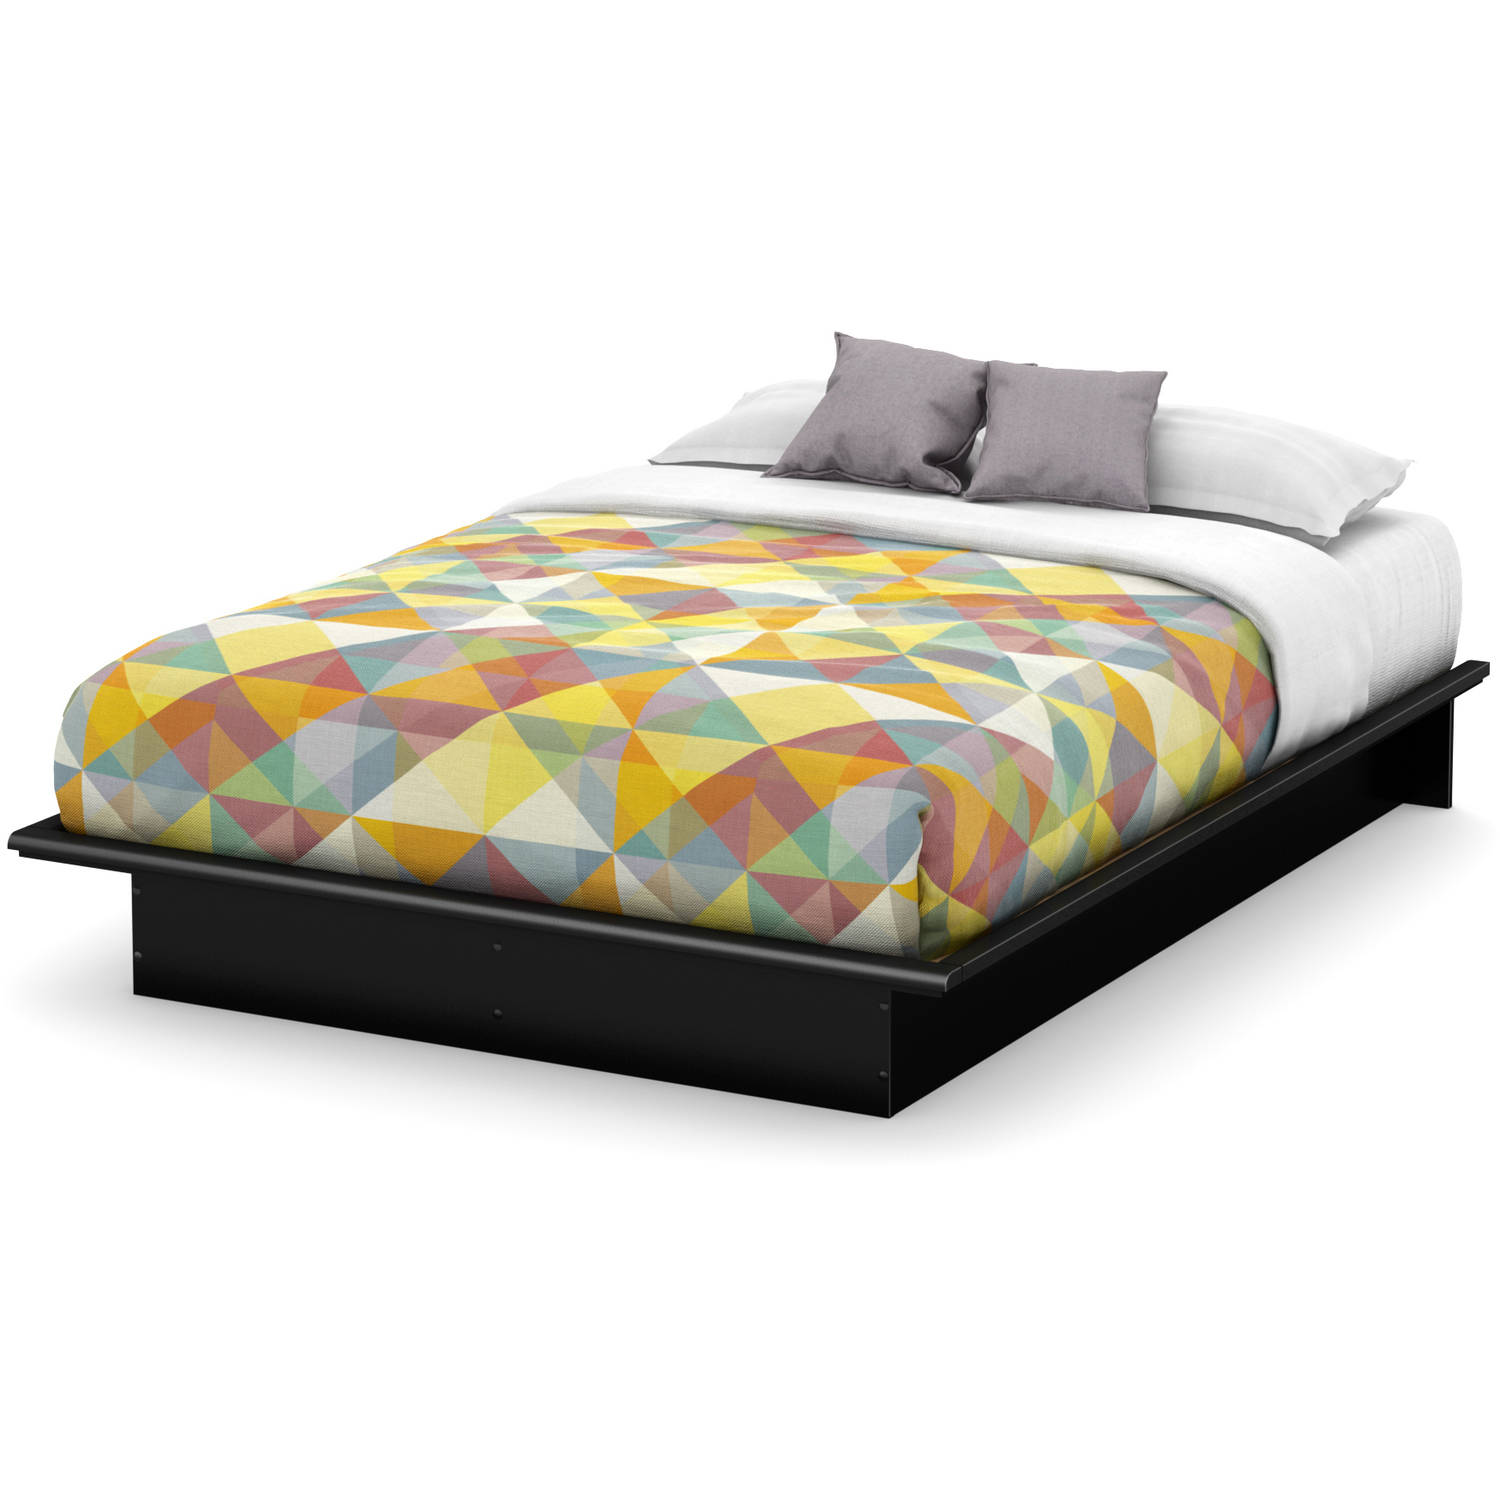 Bedroom Furniture Beds MattressesDressersWalmartcom